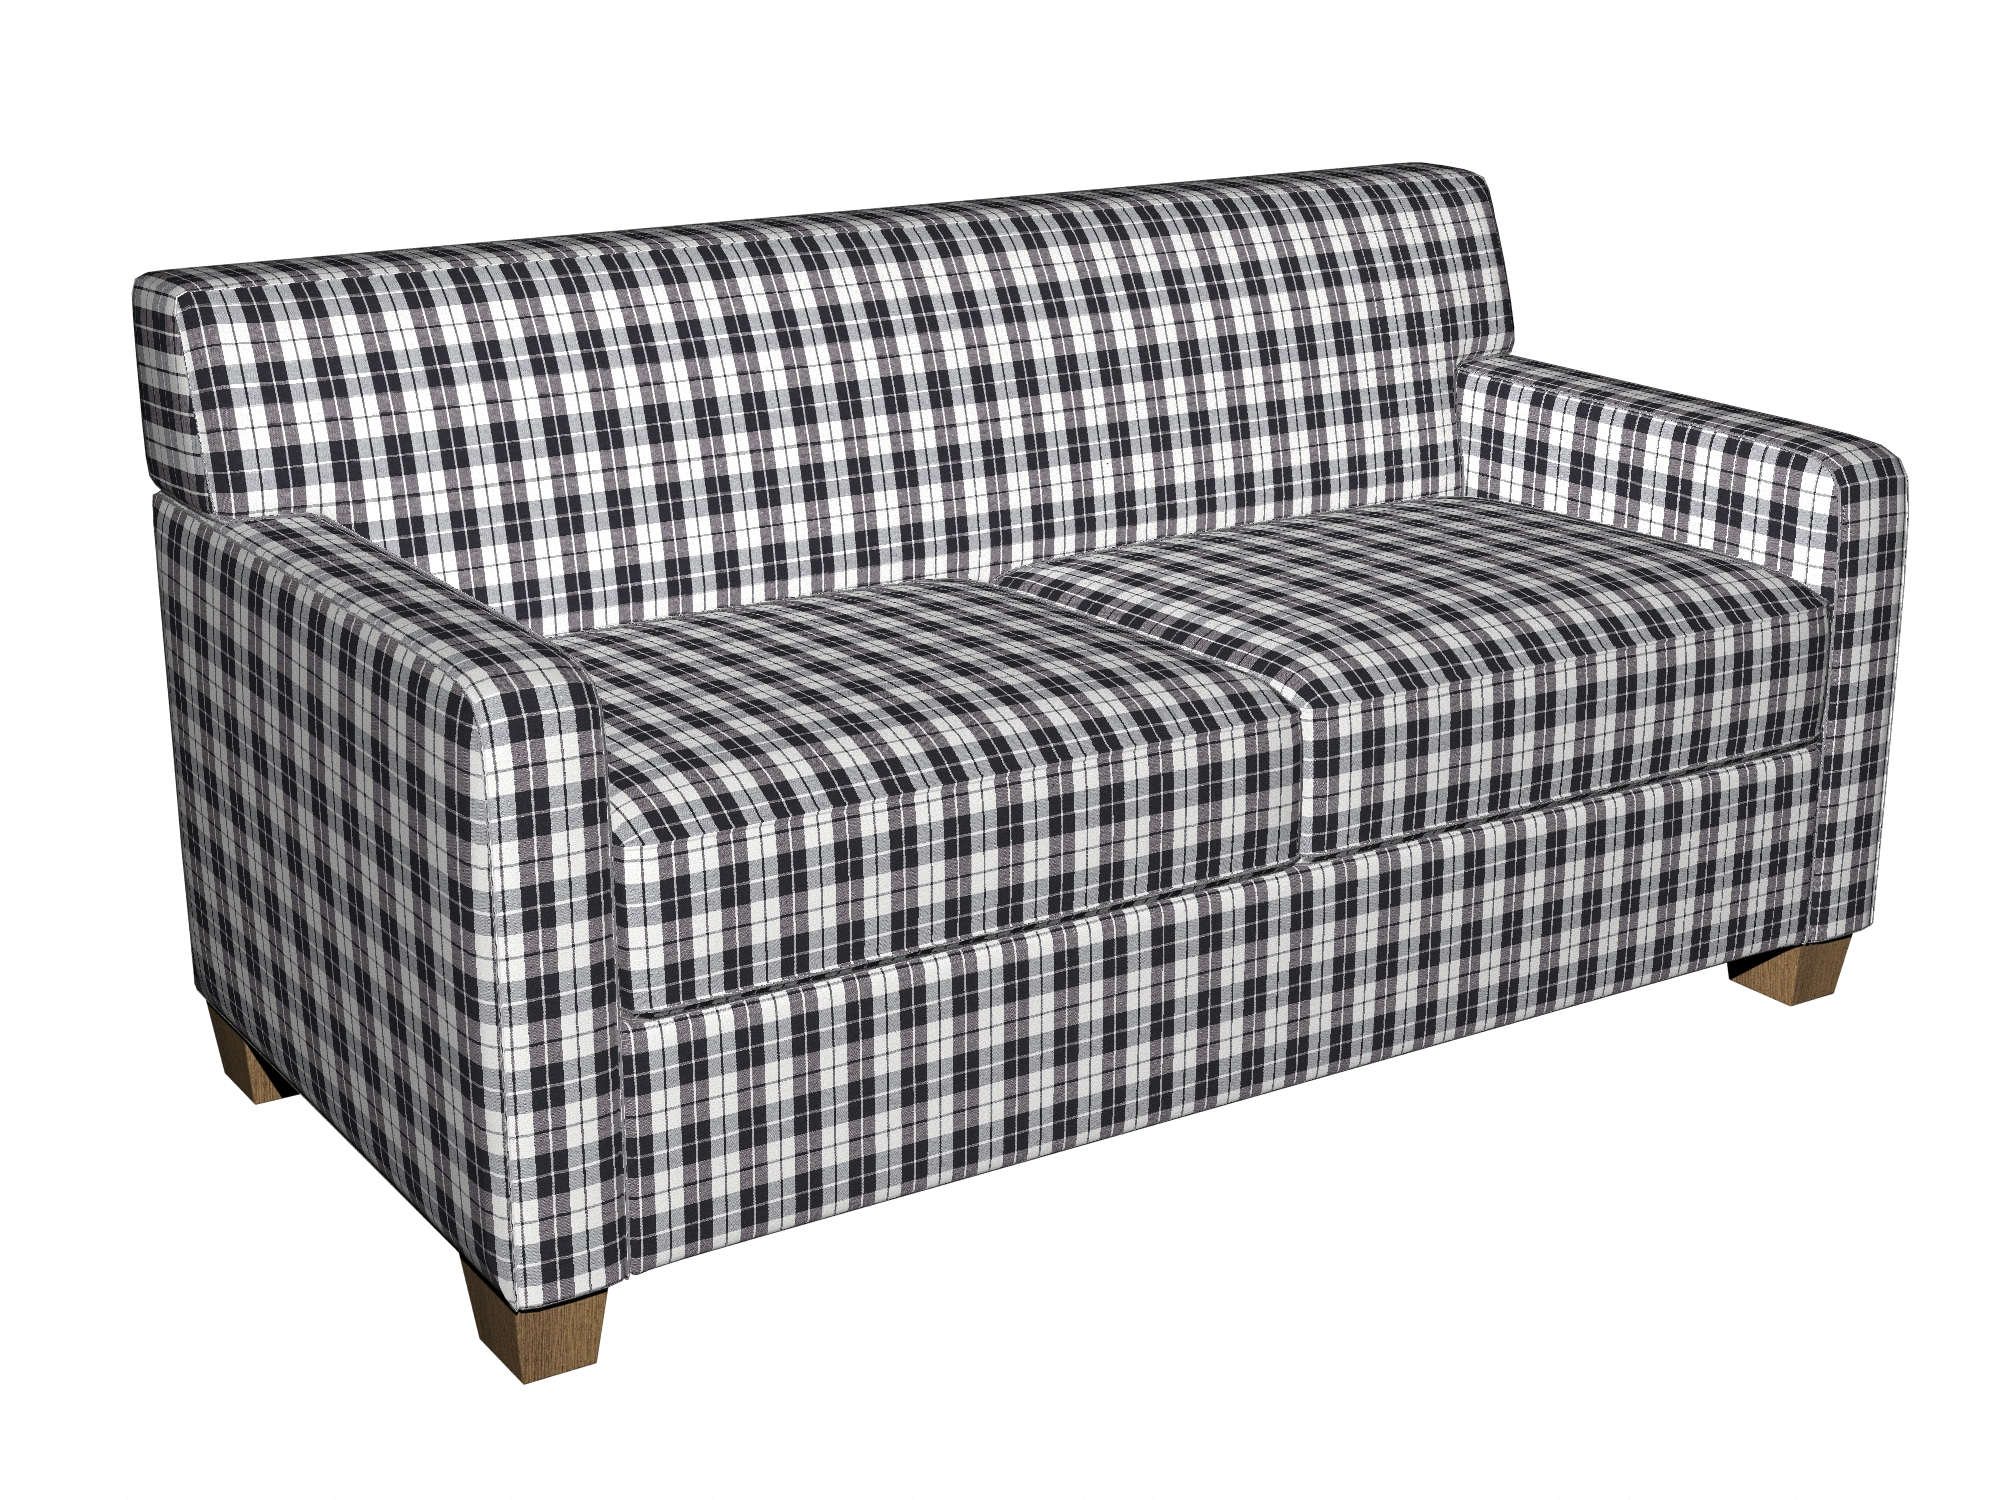 Onyx Plaid Black And White Small Scale Denim Drapery And